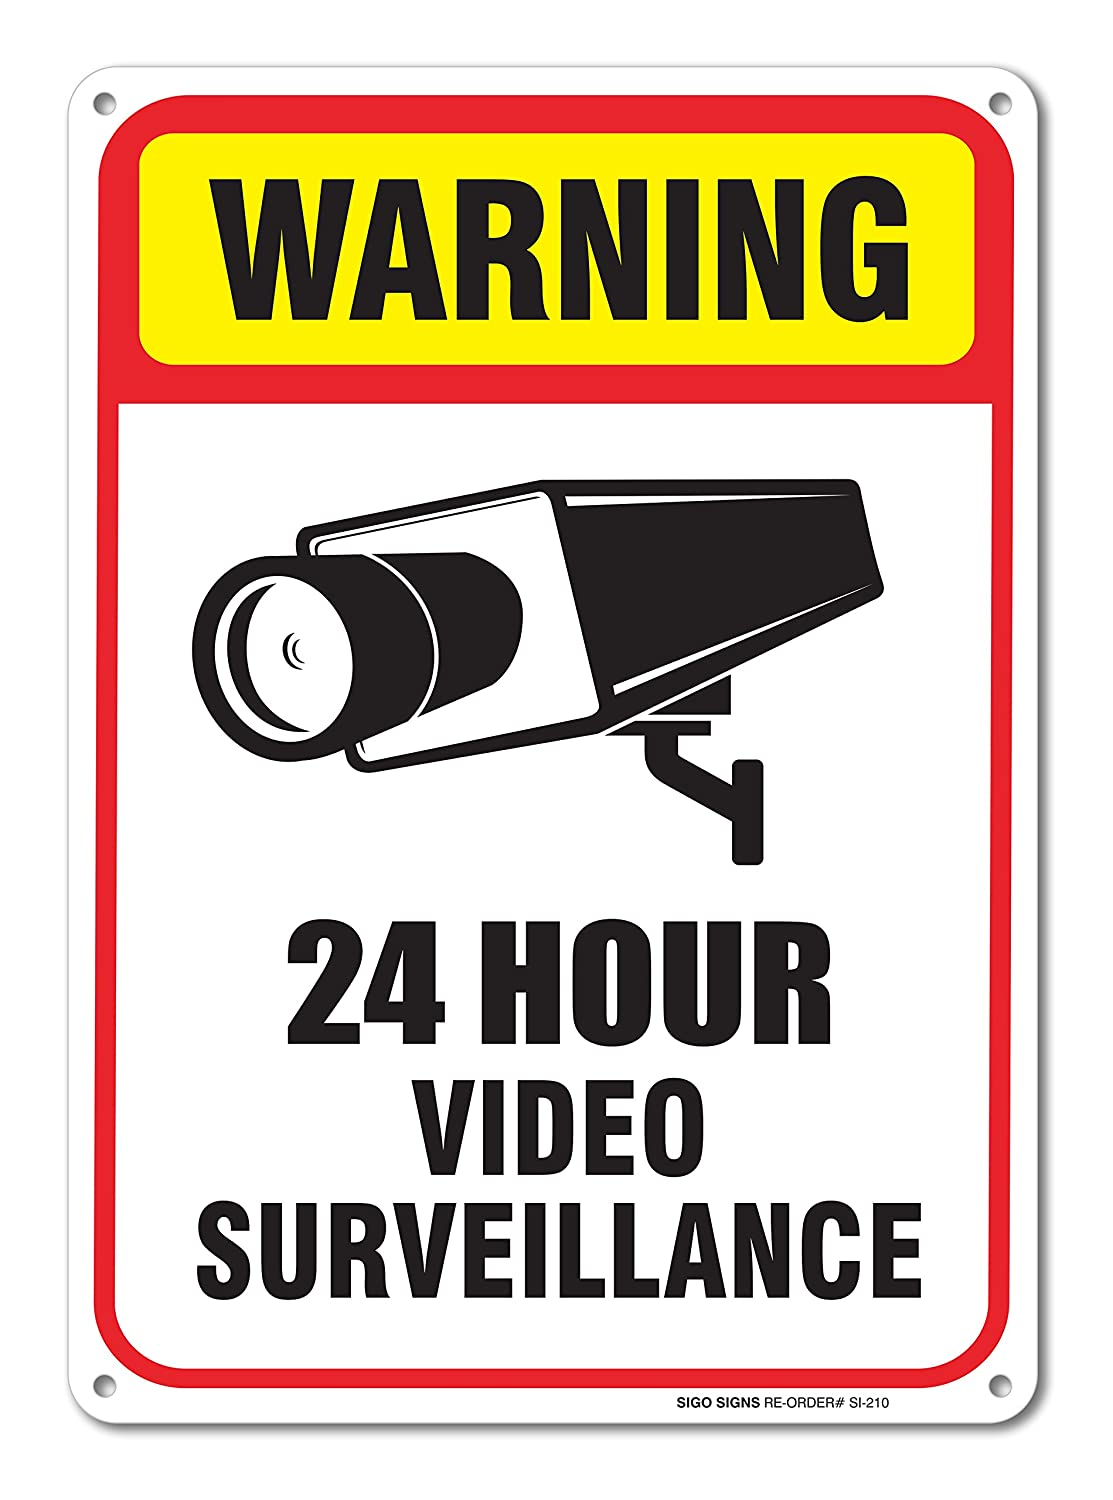 24 hour video surveillance sign 7 x 10 40 aluminum sign 641171987822 ebay. Black Bedroom Furniture Sets. Home Design Ideas